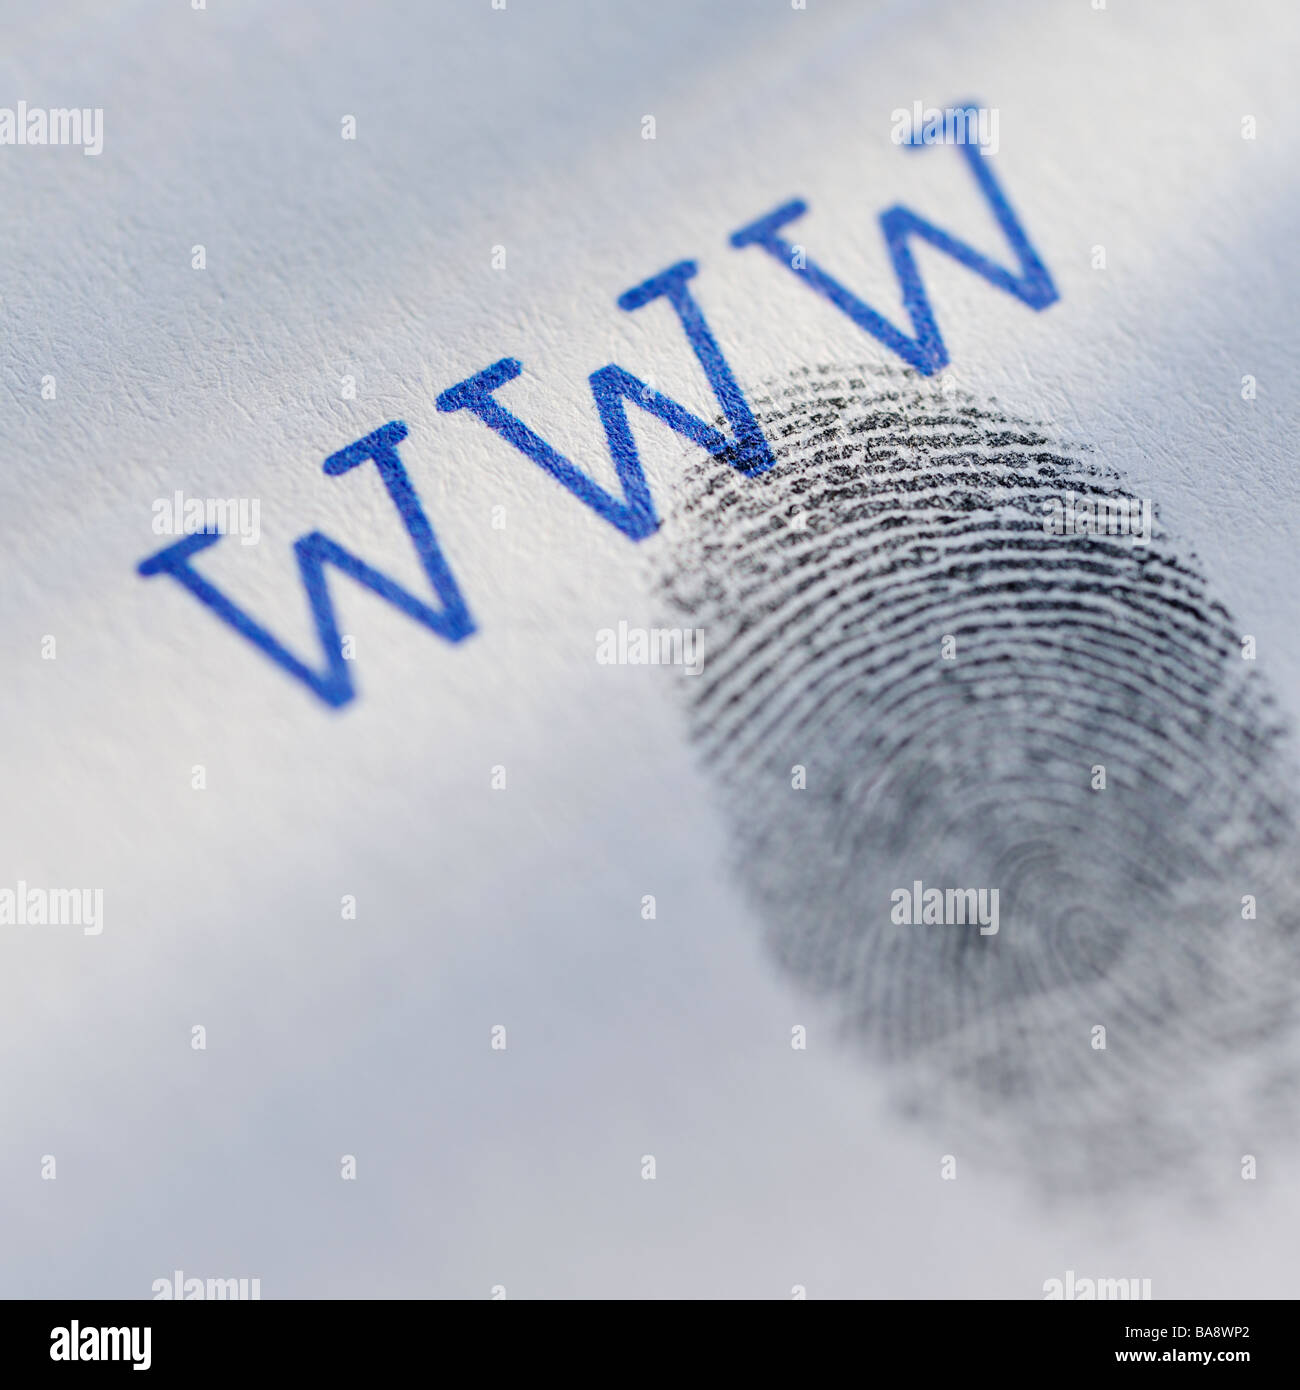 Fingerprint and world wide web acronym - Stock Image